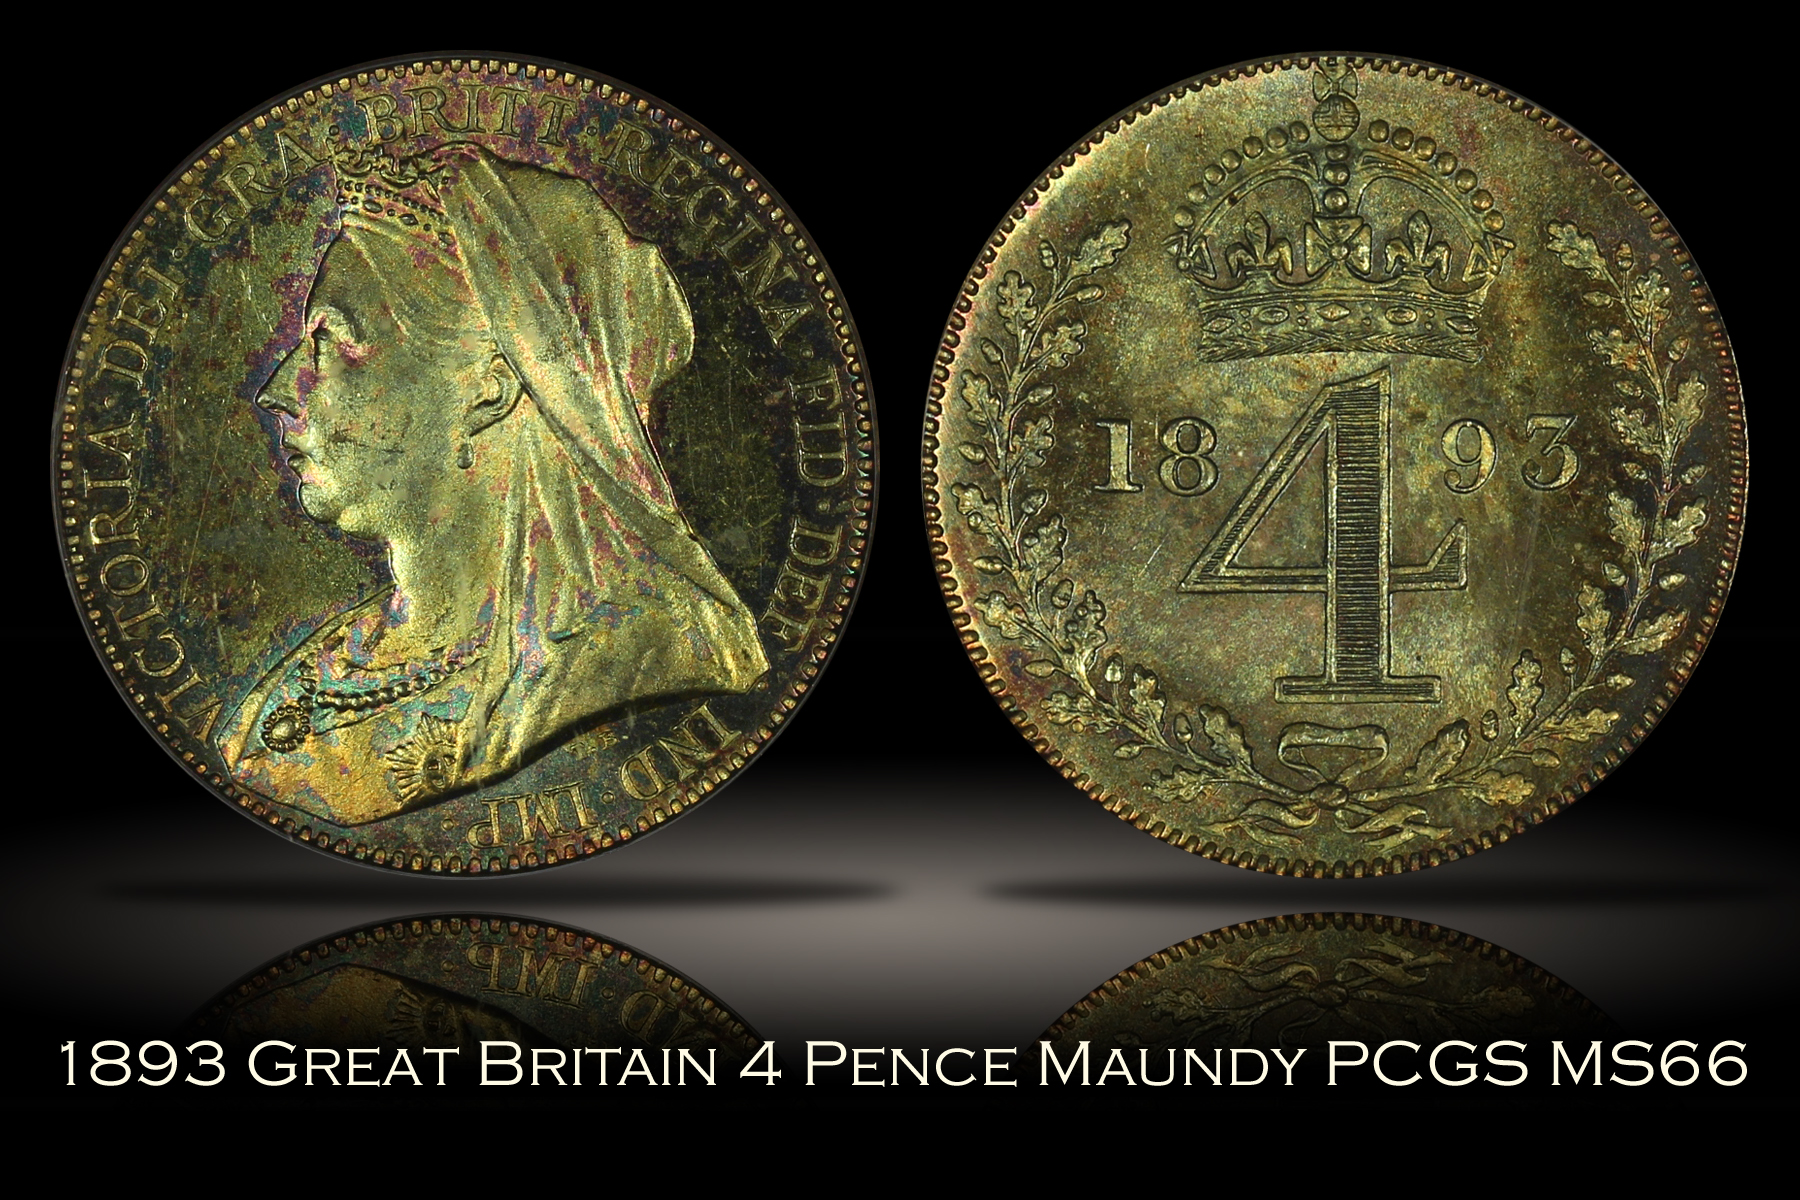 1893 Great Britain 4 Pence Maundy PCGS MS66